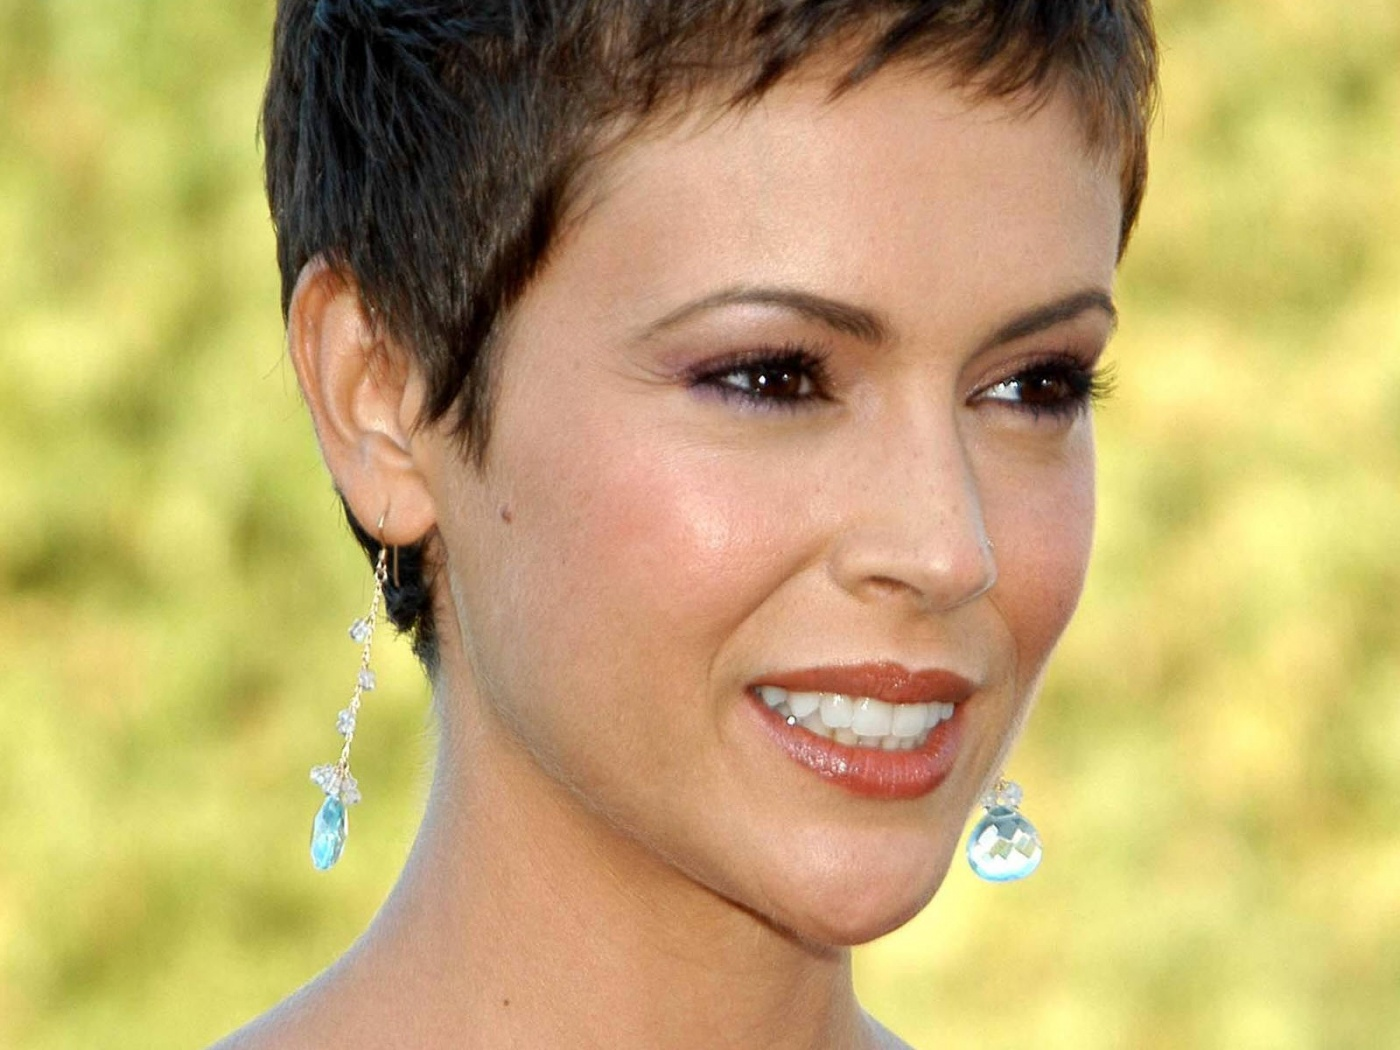 hairstyles ideas for short hair | free hairstyles